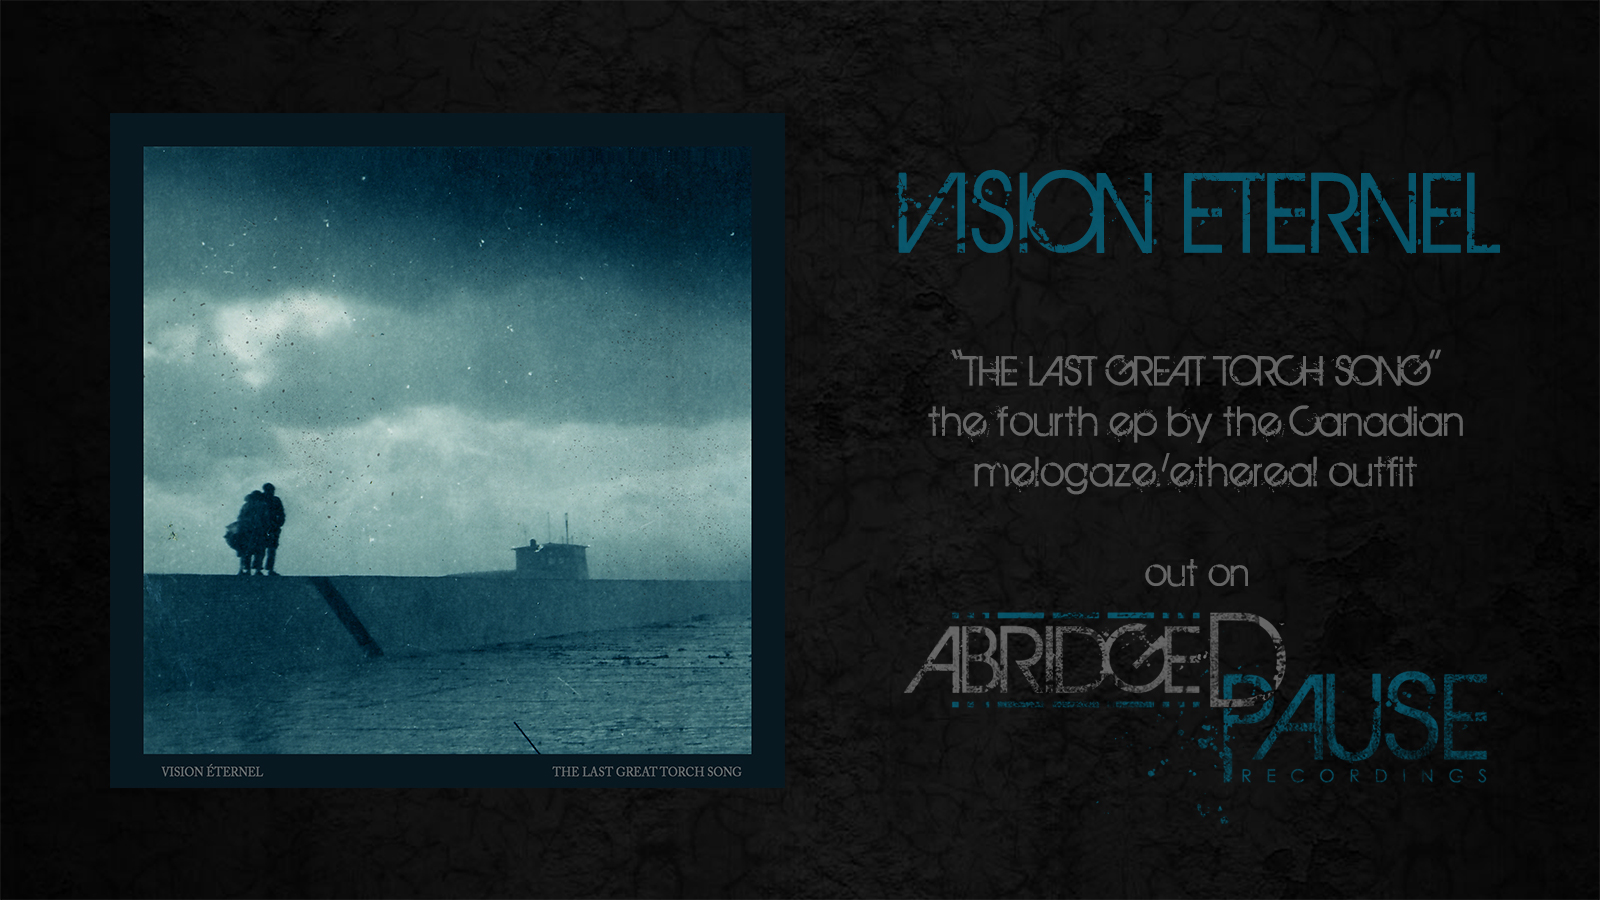 Vision Éternel The Last Great Torch Song EP Is Released